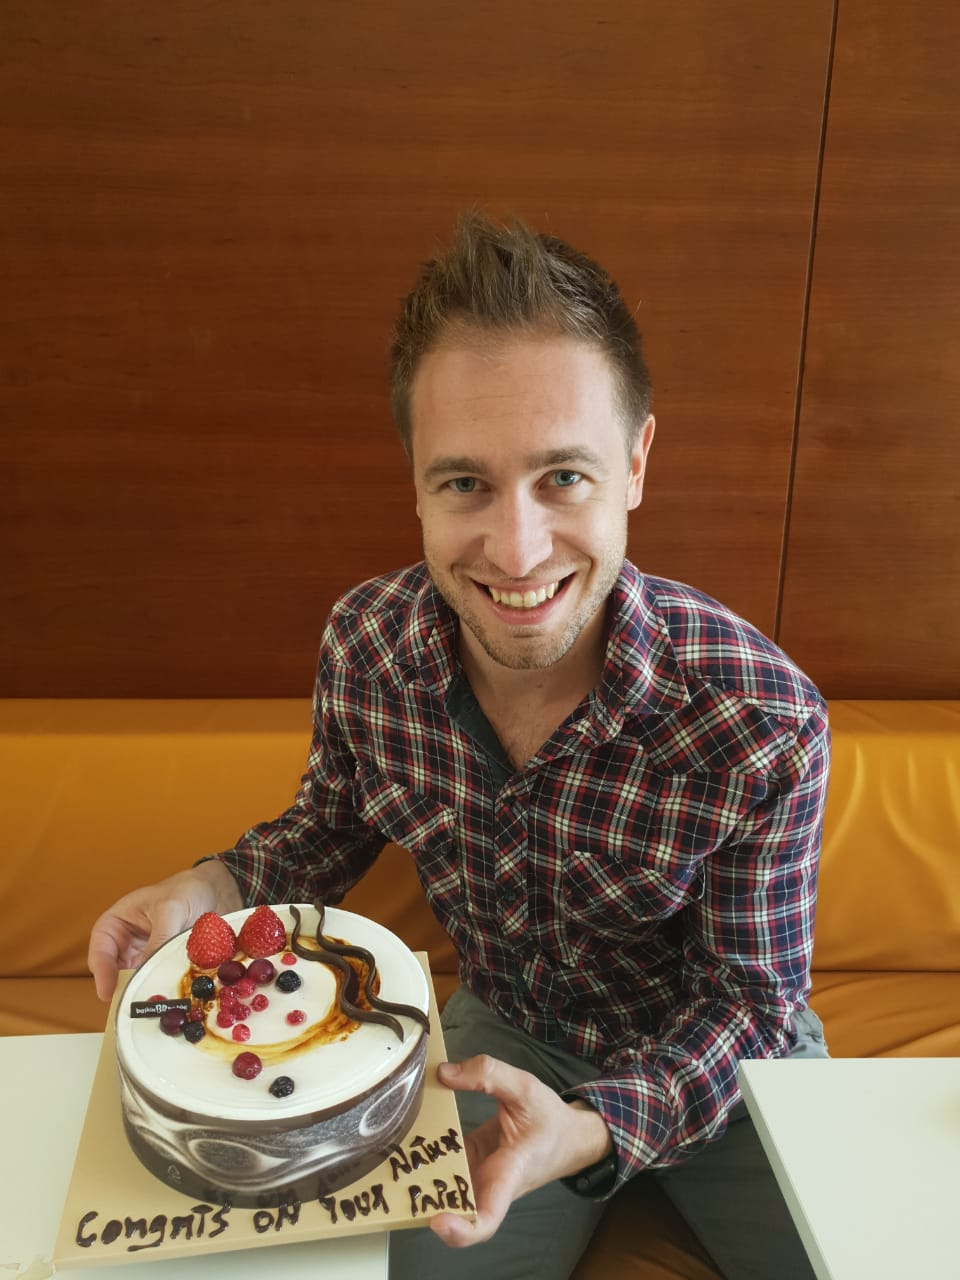 Congrats on the Nature Review Paper! - 7/03/19A well-deserved cake celebration for OMEGALAB Post-Doctoral Fellow Nicola Gasparini for his latest Review in Nature Review Materials, examining the role of the third component in ternary organic solar cells. Well done to all involved (Derya Baran, Iain McCulloch and Alberto Salleo). https://www.nature.com/articles/s41578-019-0093-4